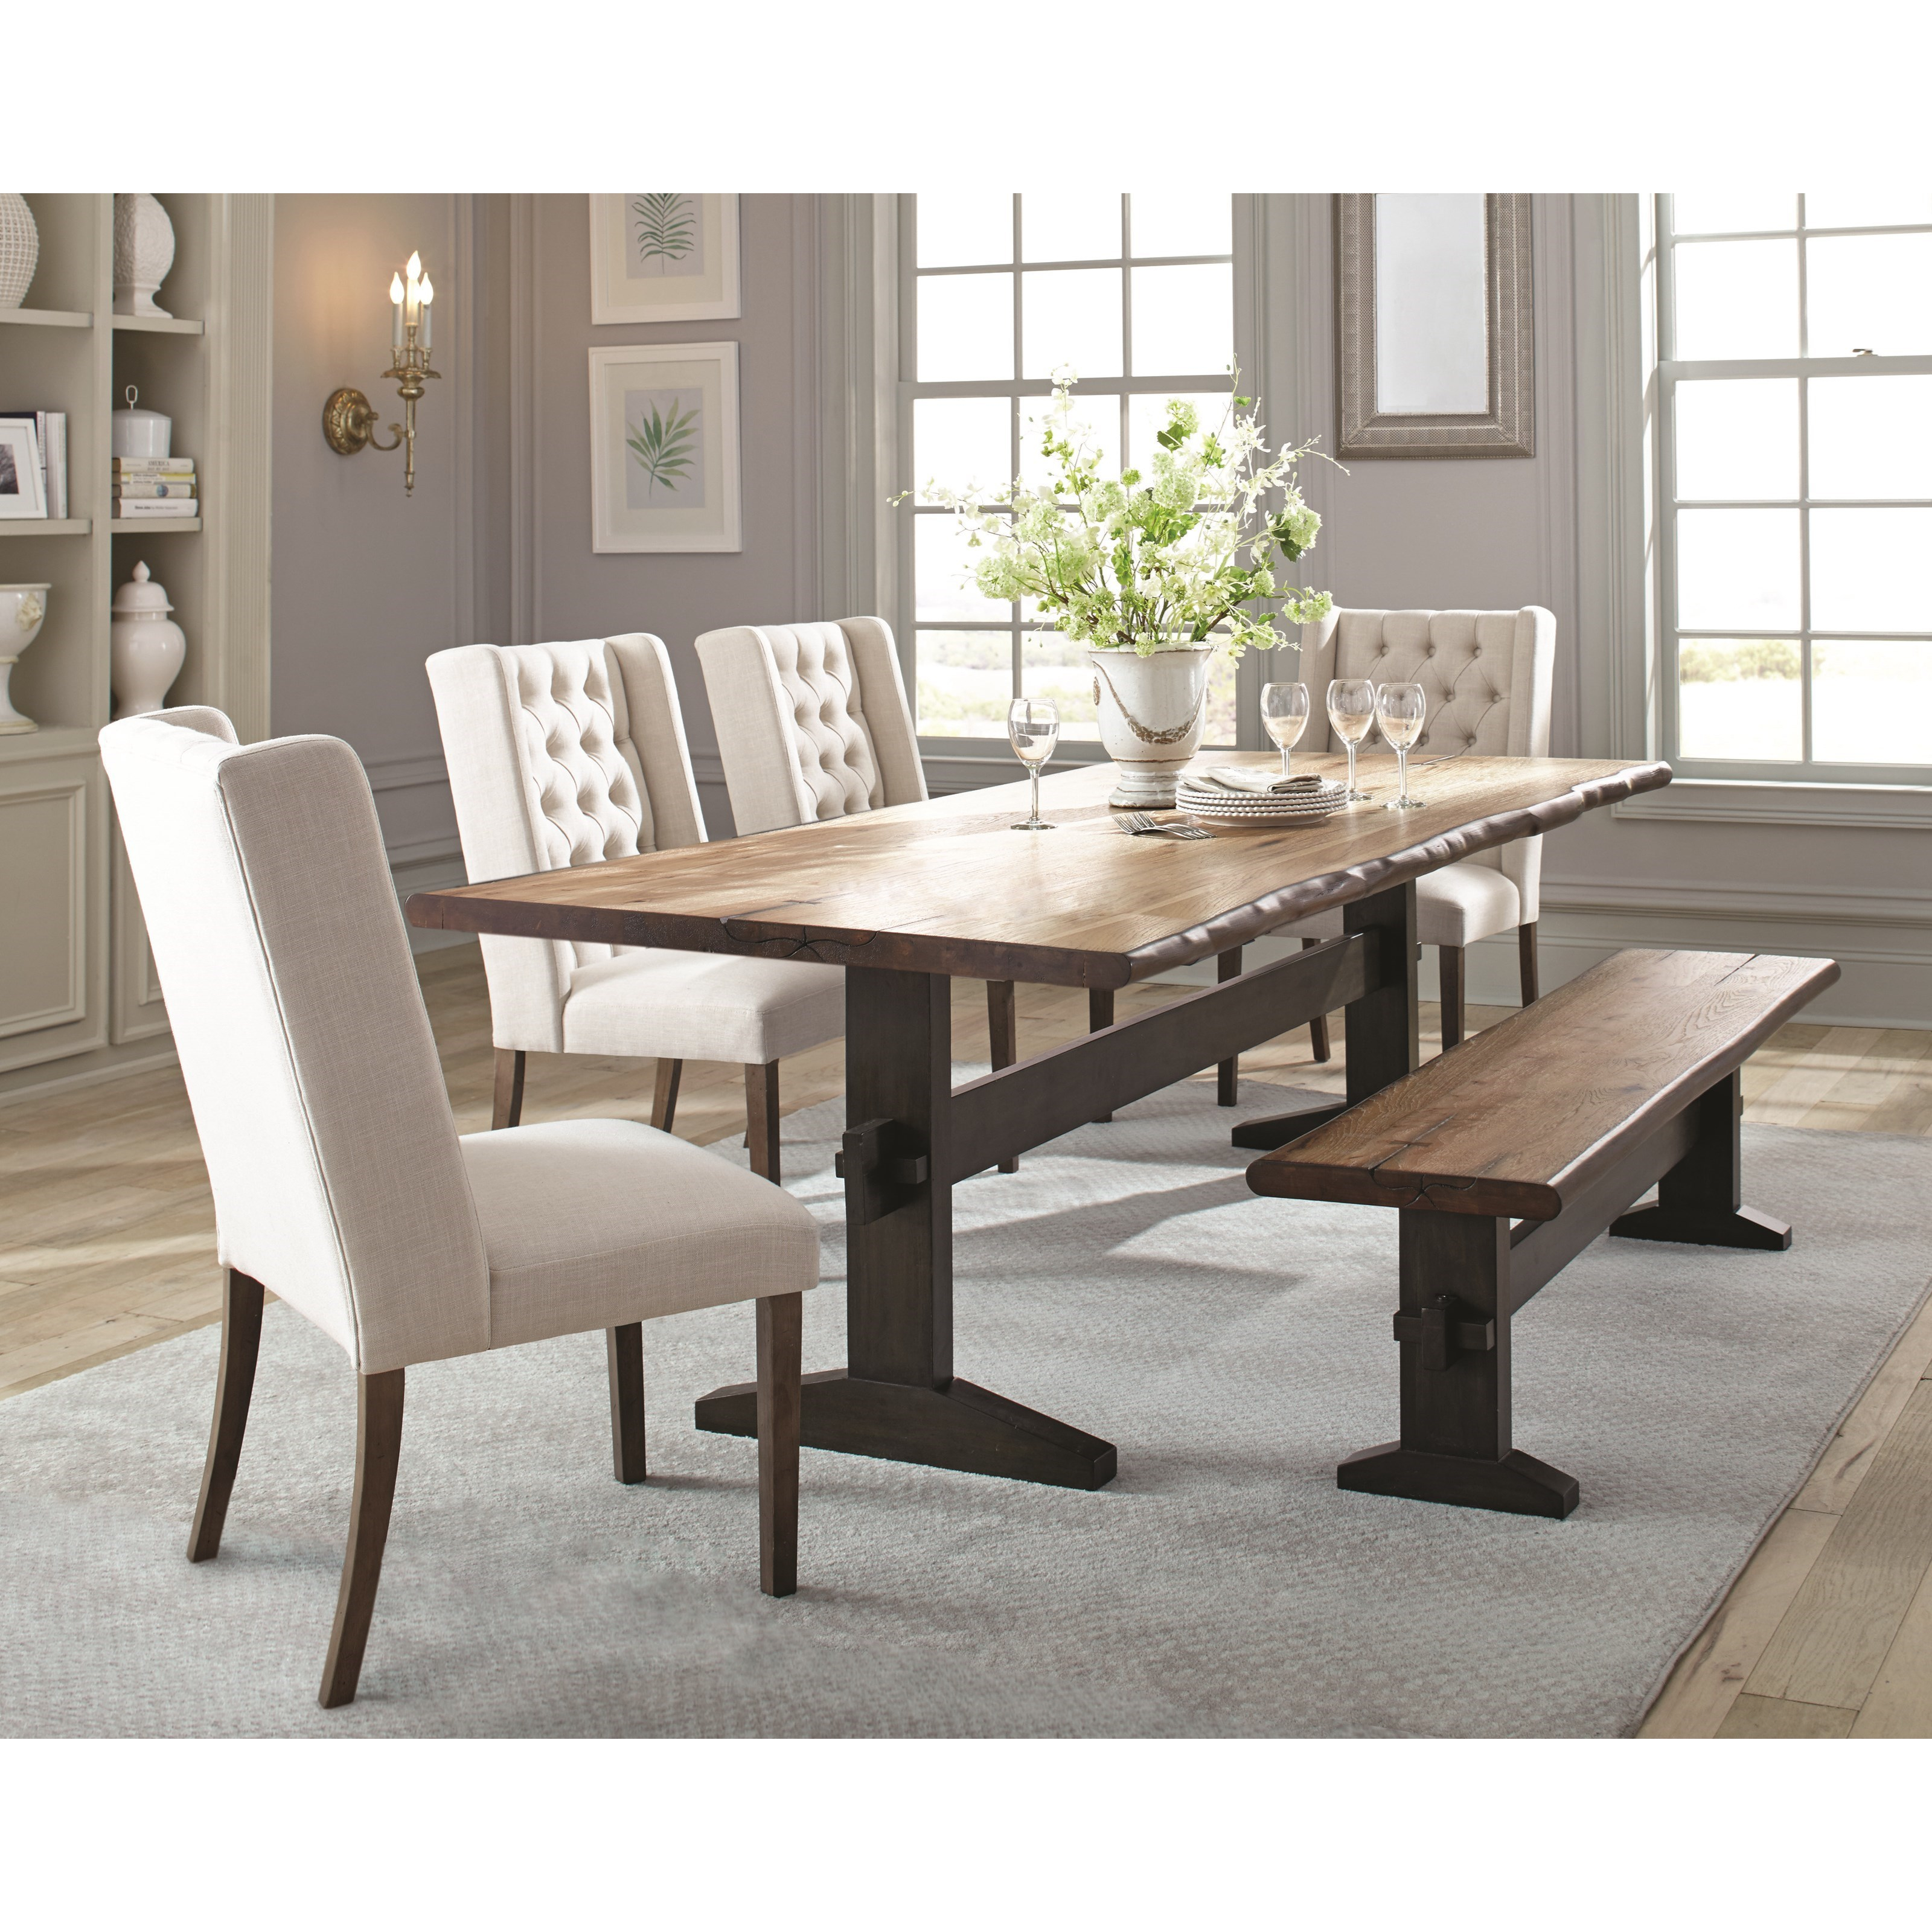 Scott Living Burnham Rustic Live Edge Dining Table Set With Bench intended for 11 Clever Designs of How to Craft Living And Dining Room Sets